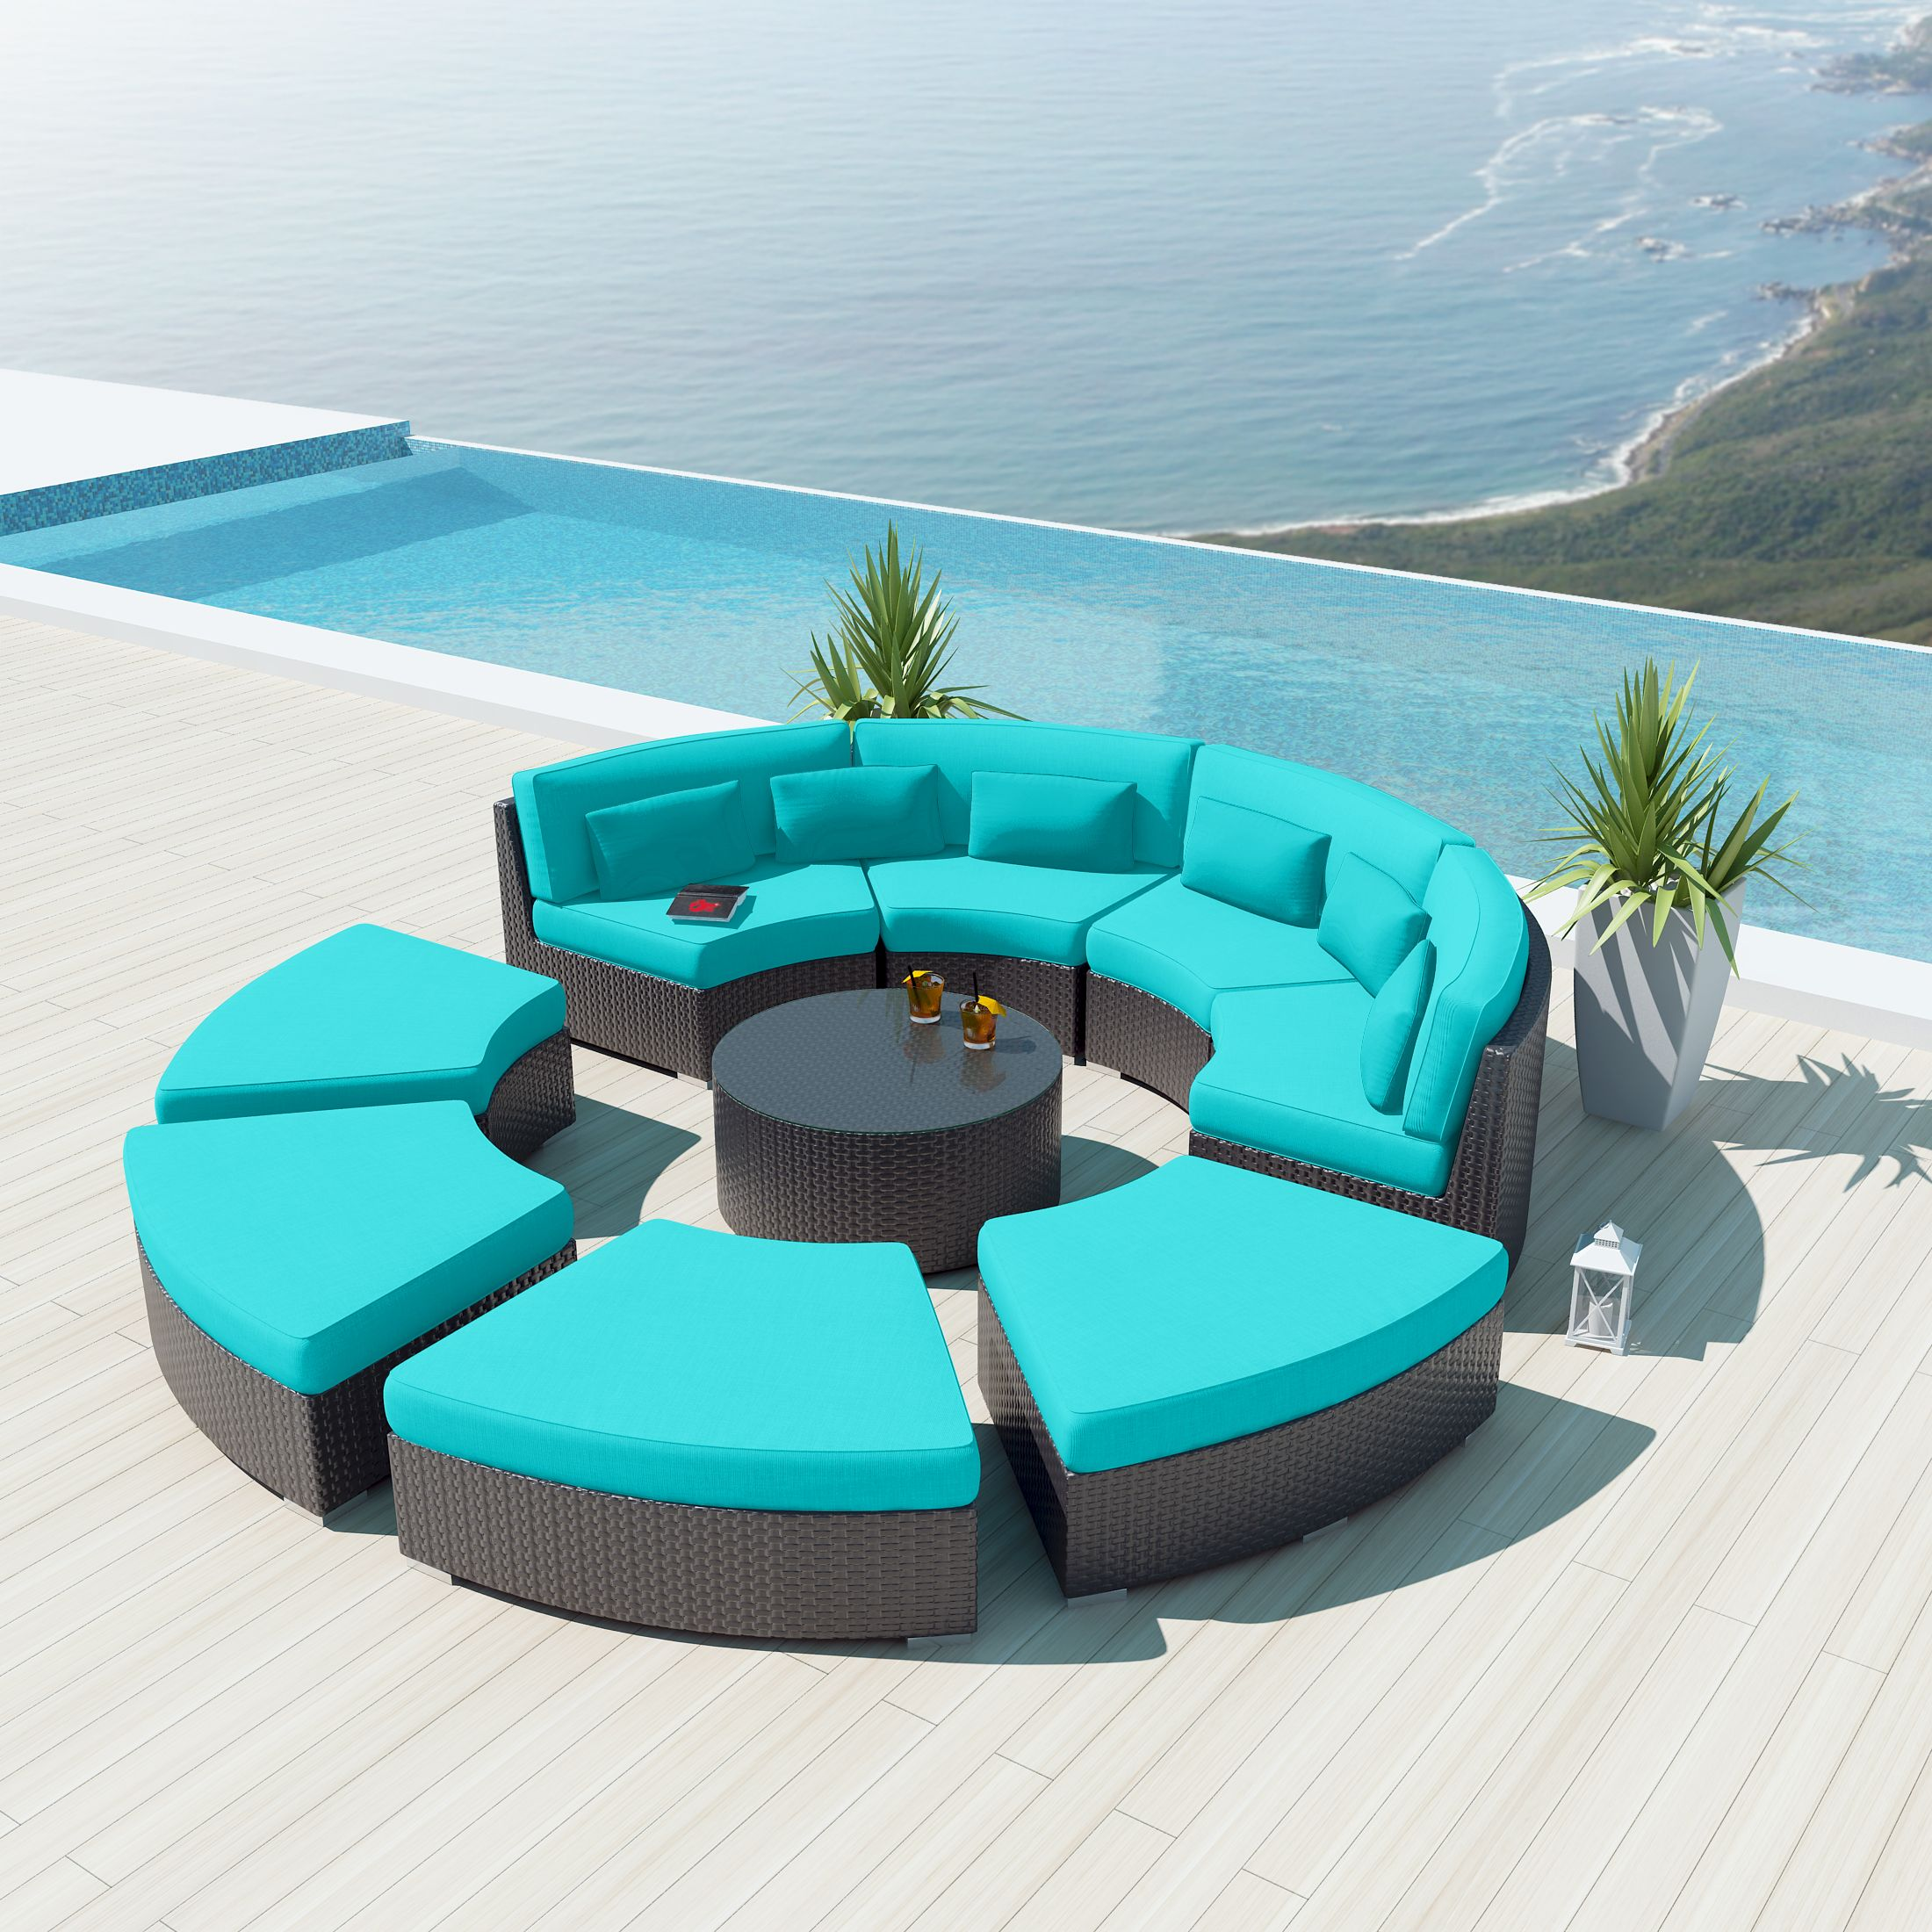 Uduka modavi pcs outdoor sectional round patio sofa set future